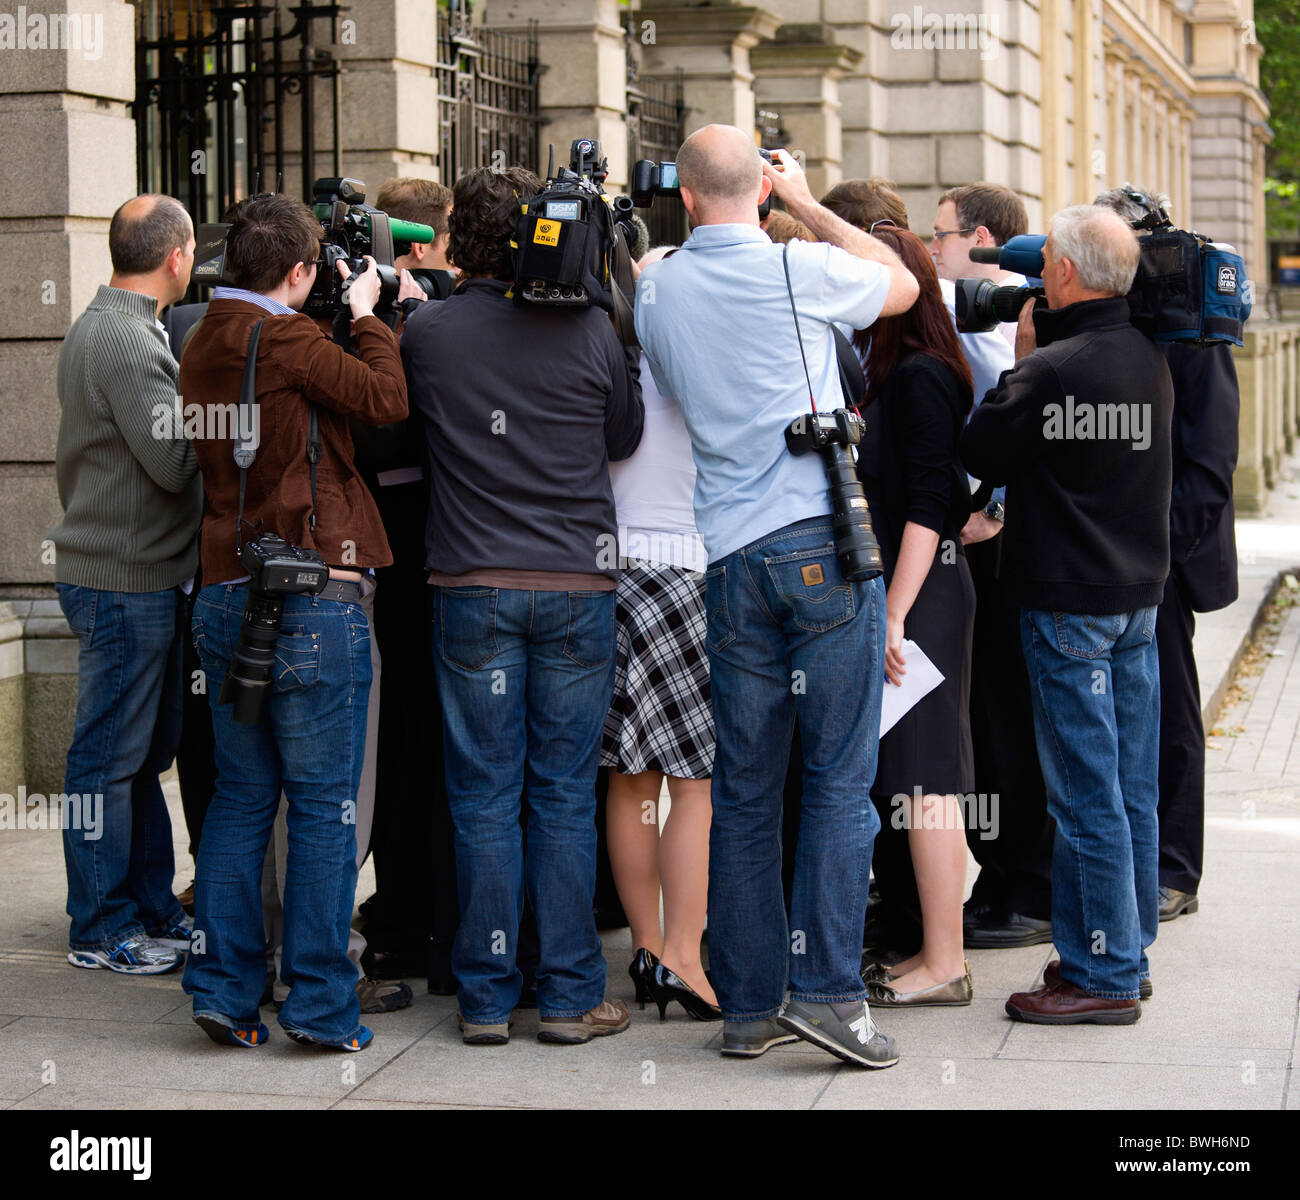 Ireland County  Dublin City News Media Press photographers cameramen and journalists surround politician on pavement - Stock Image